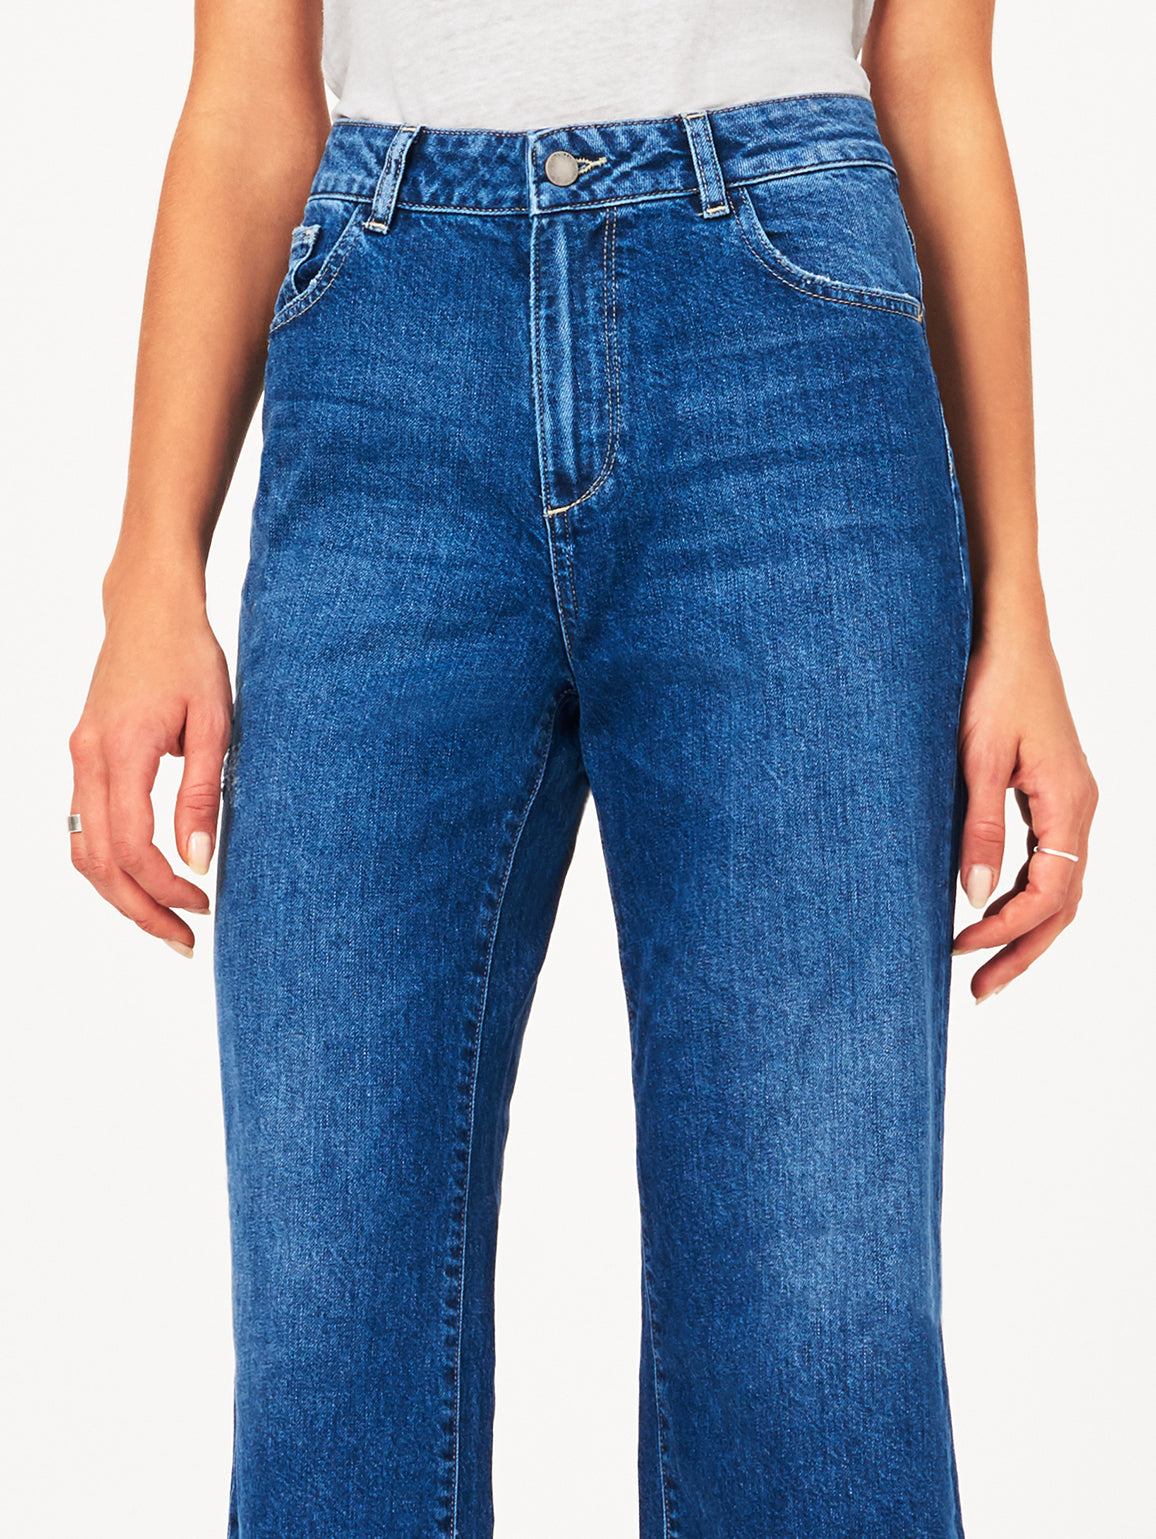 Hepburn High Rise Wide Leg | Goldfield DL 1961 Denim